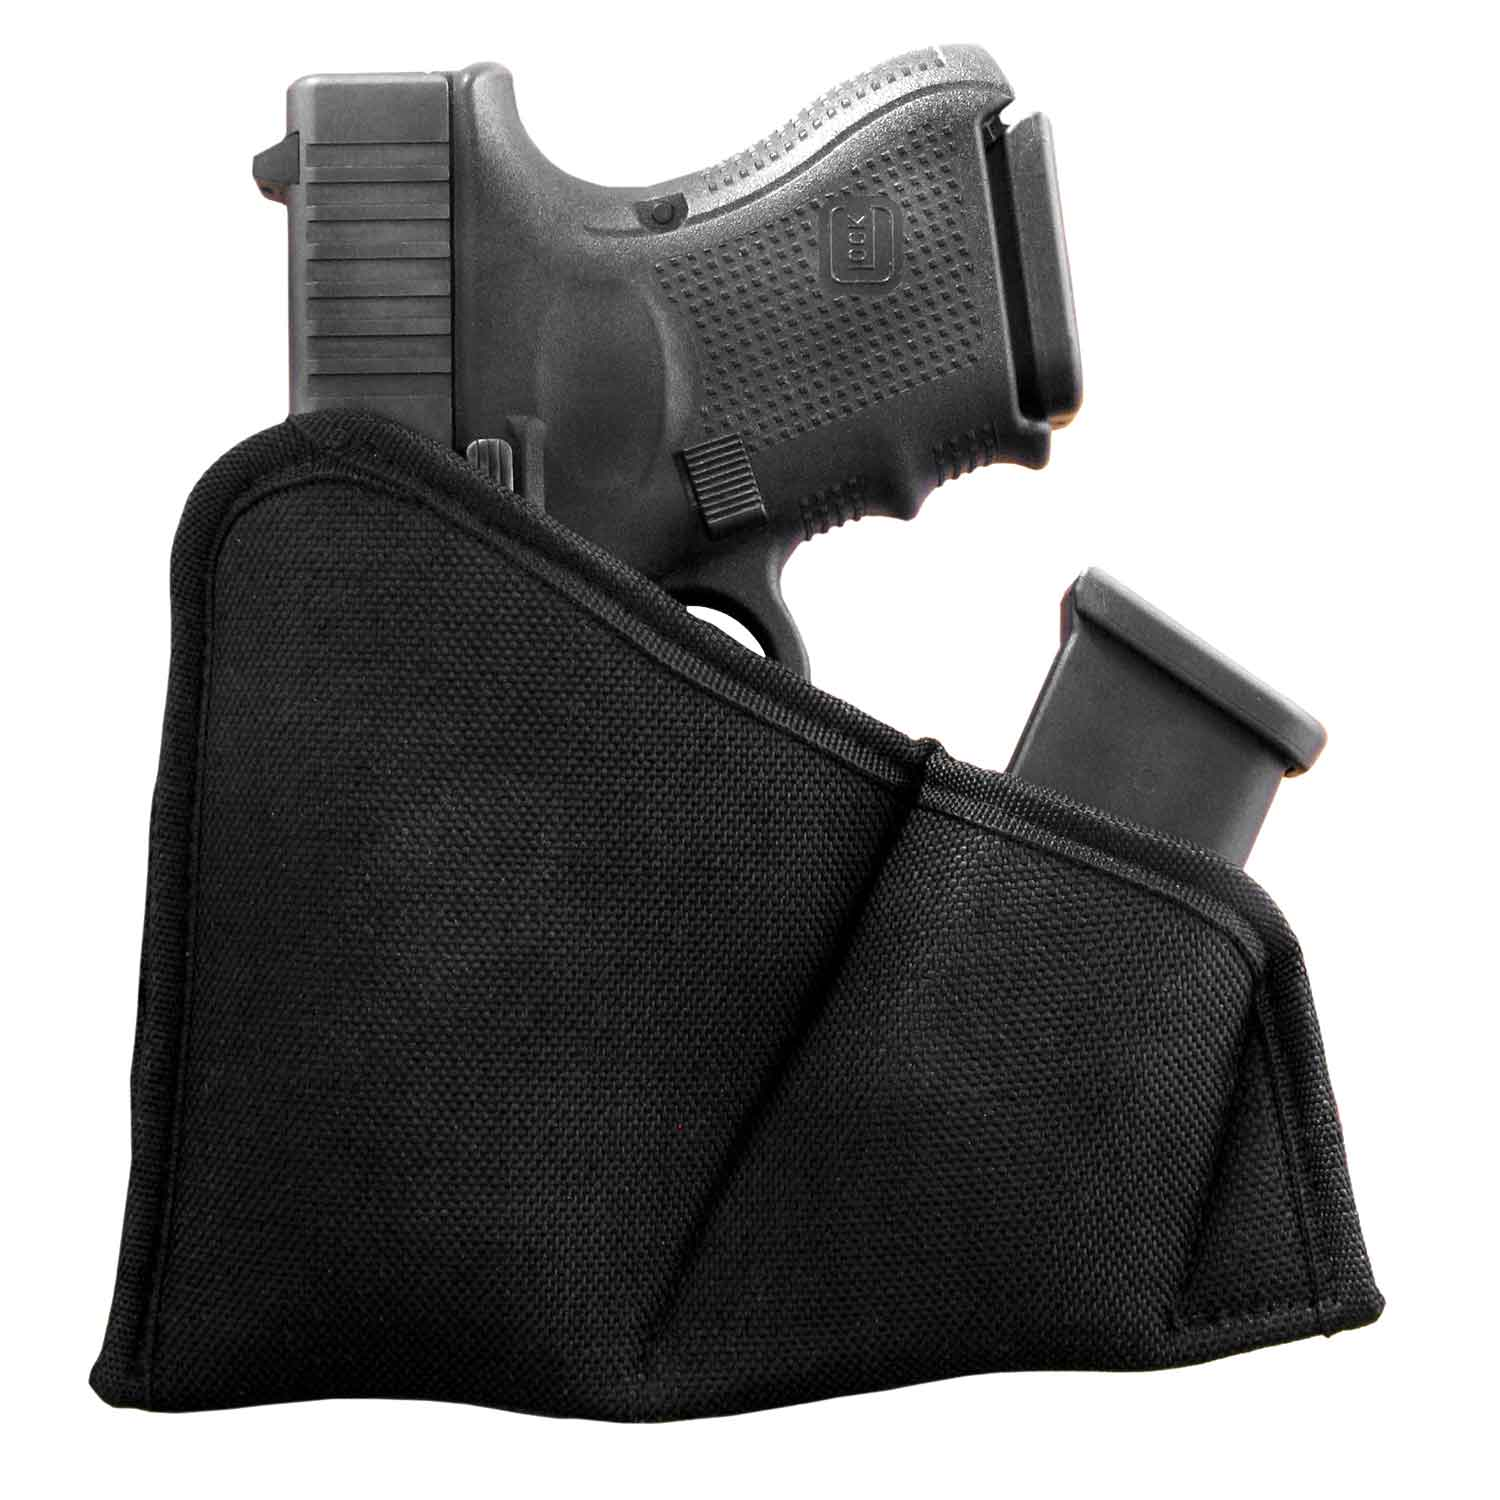 Model 50 Cargo Pocket Holster